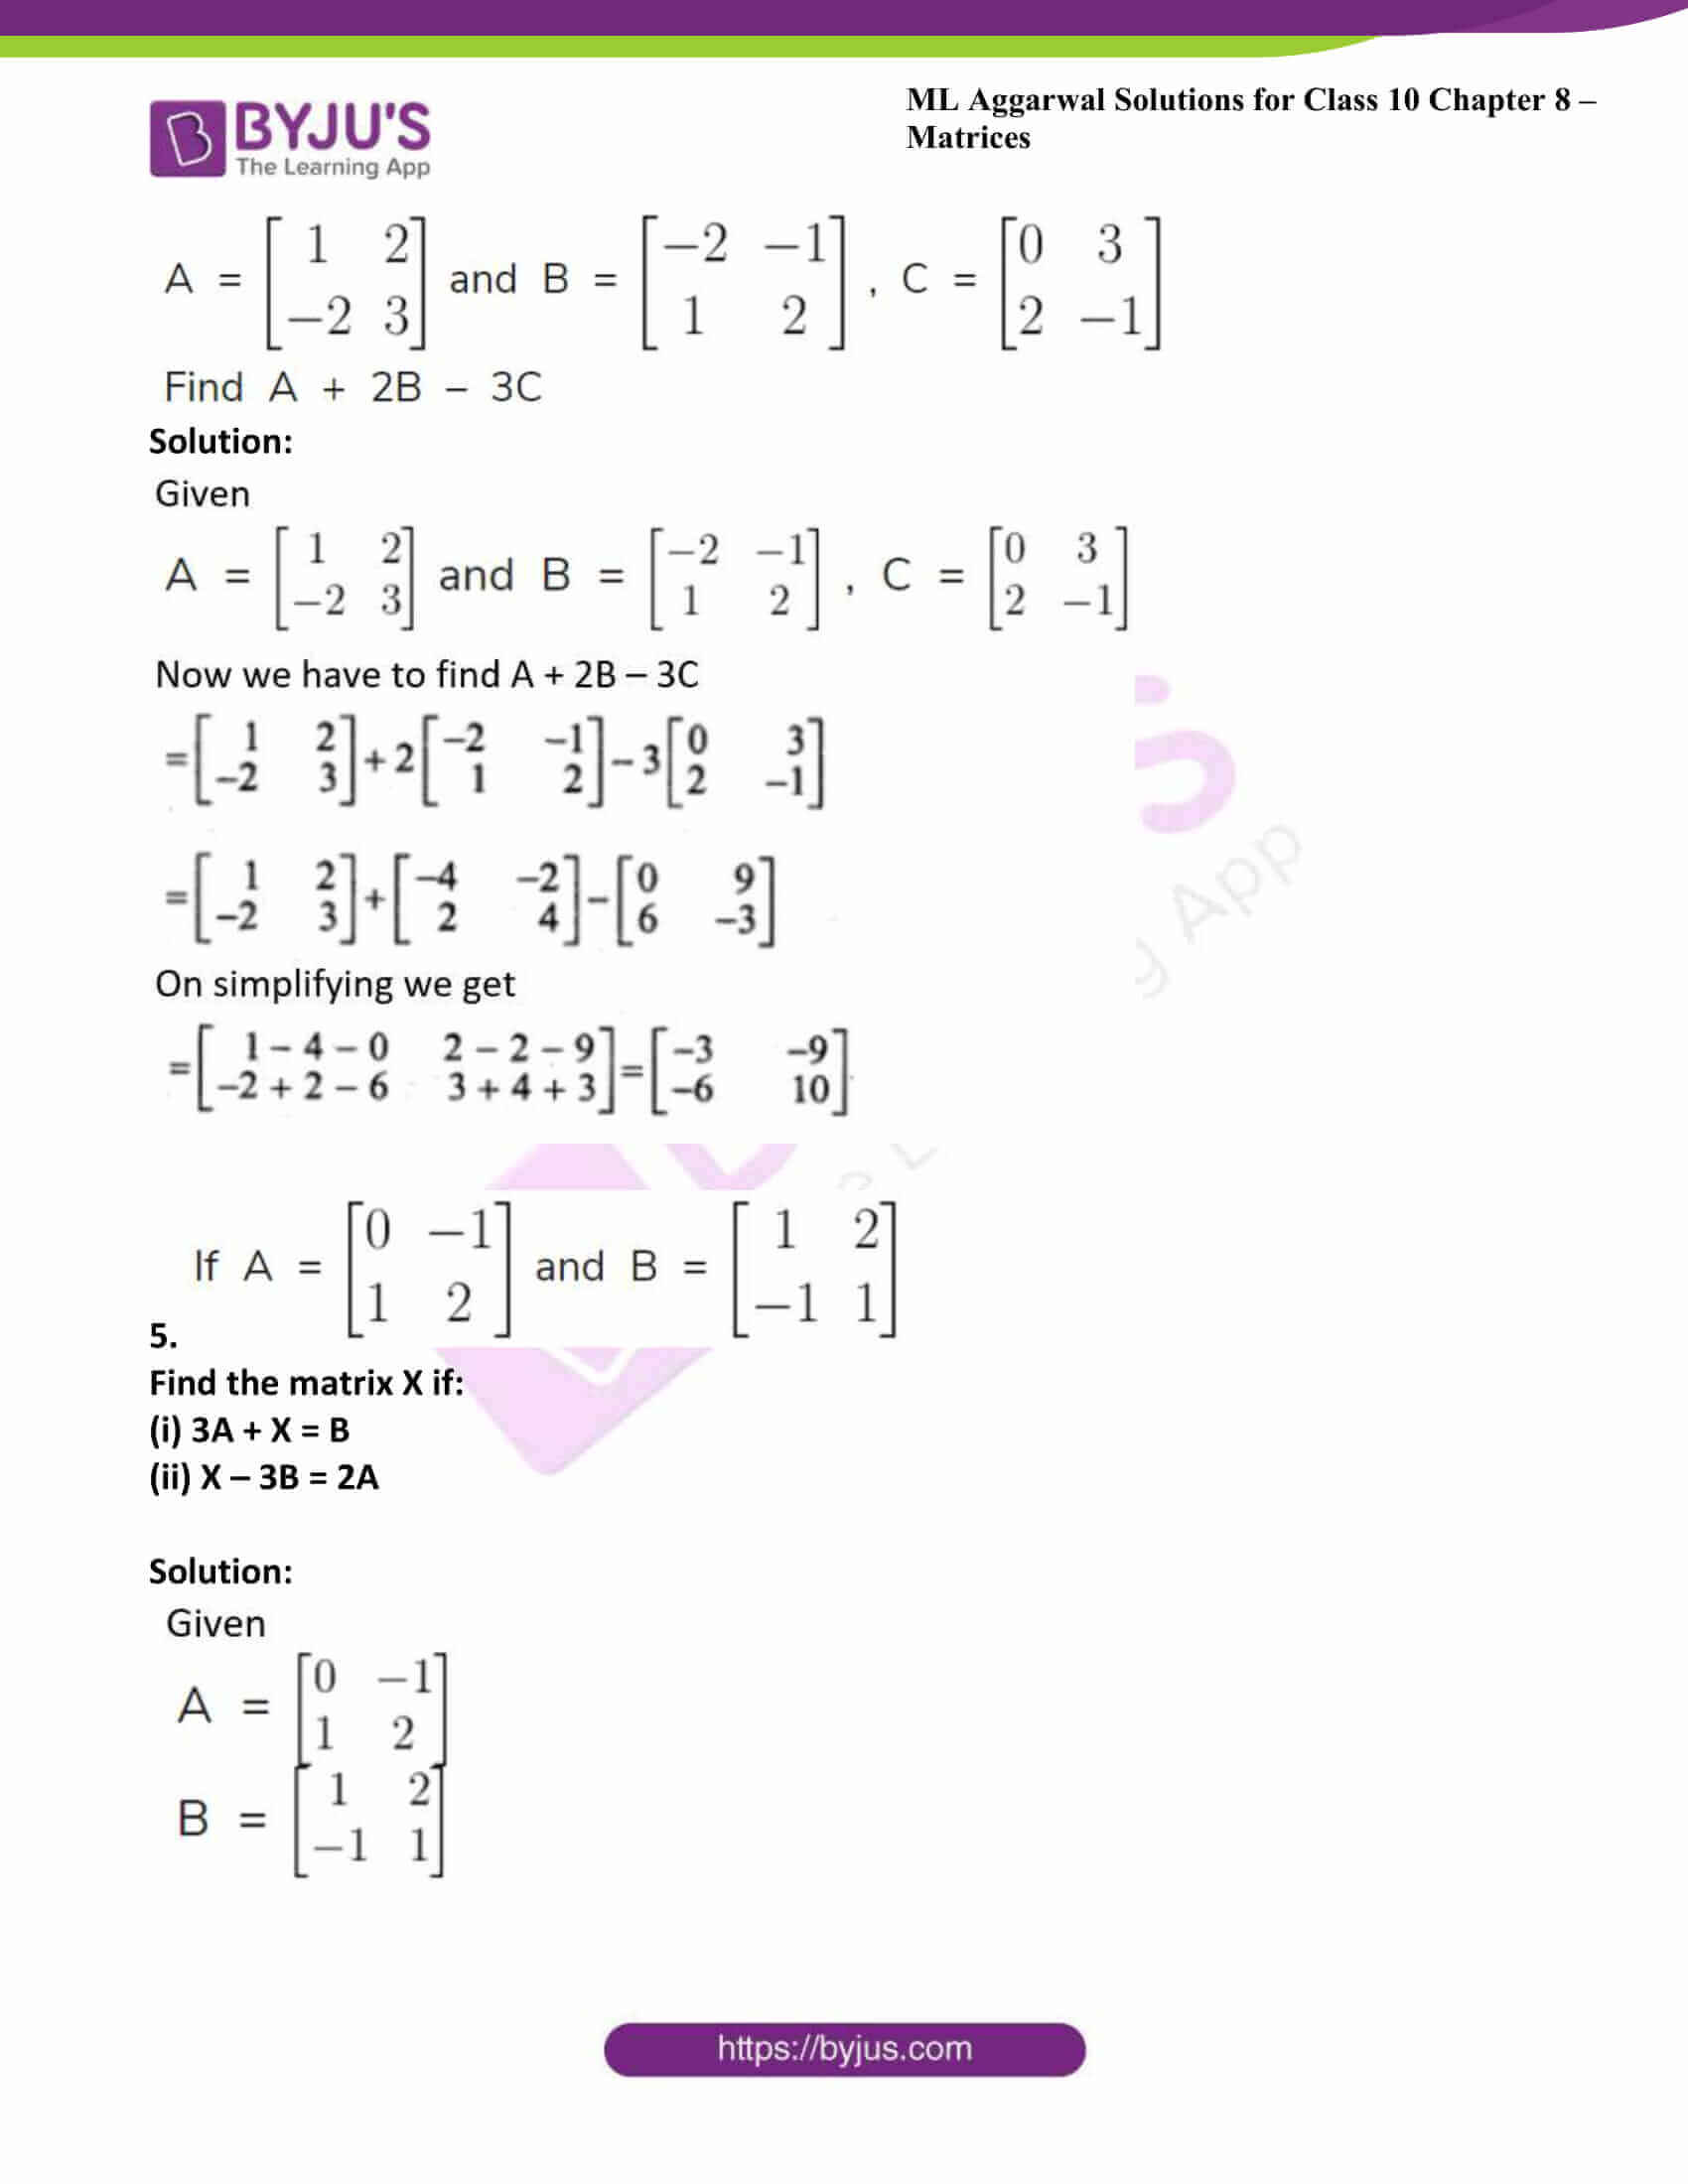 ml aggarwal solutions class 10 maths chapter 8 10